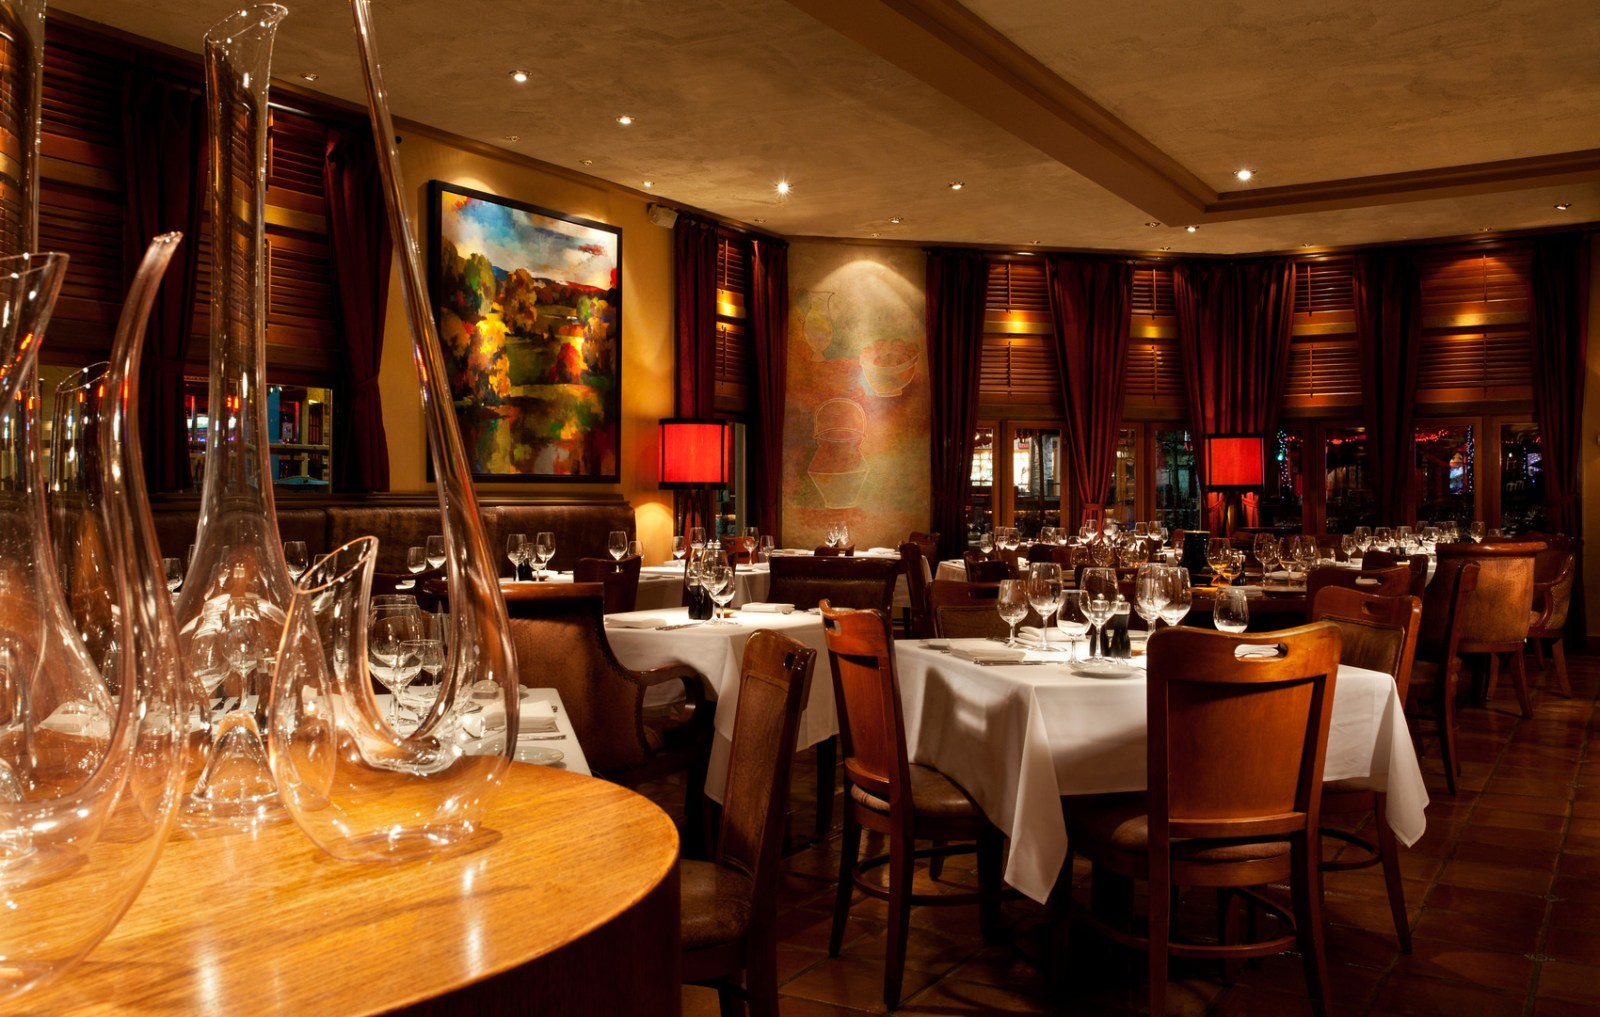 Assistant Restaurant Manager Sought at Whistler's Award-Winning Araxi